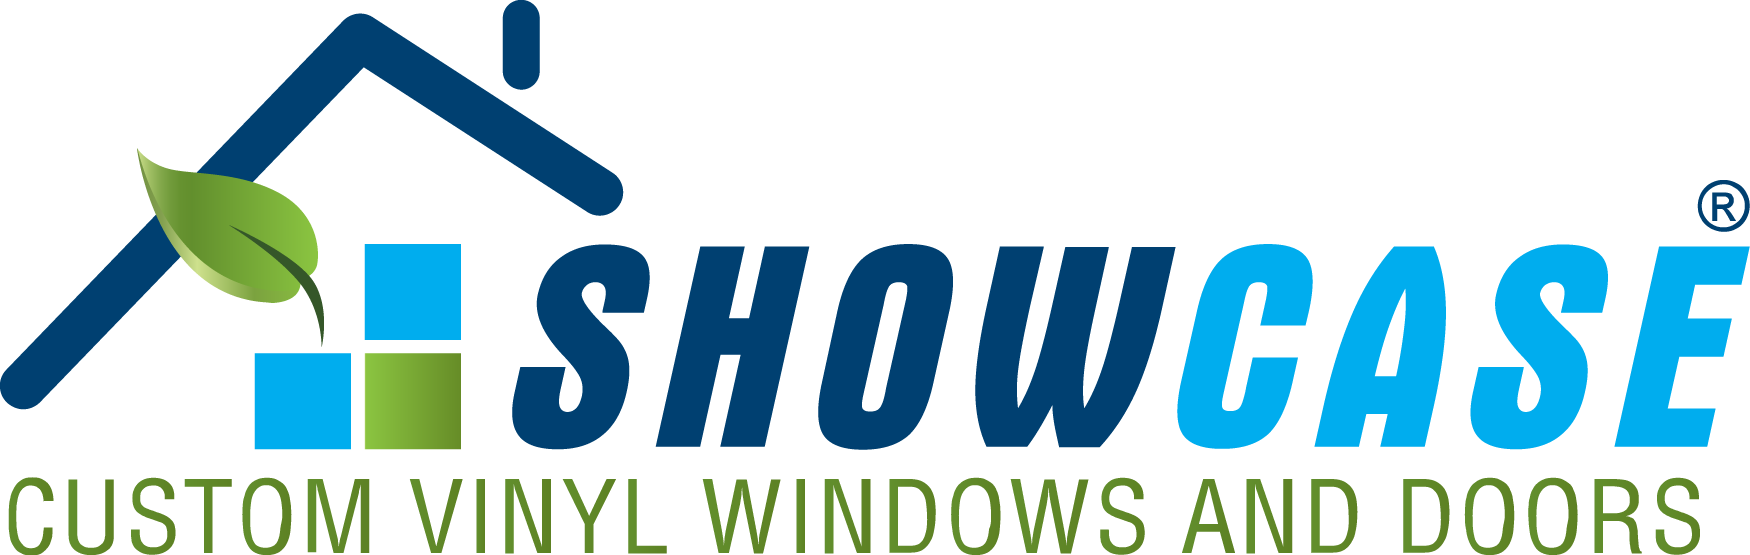 Showcase Windows